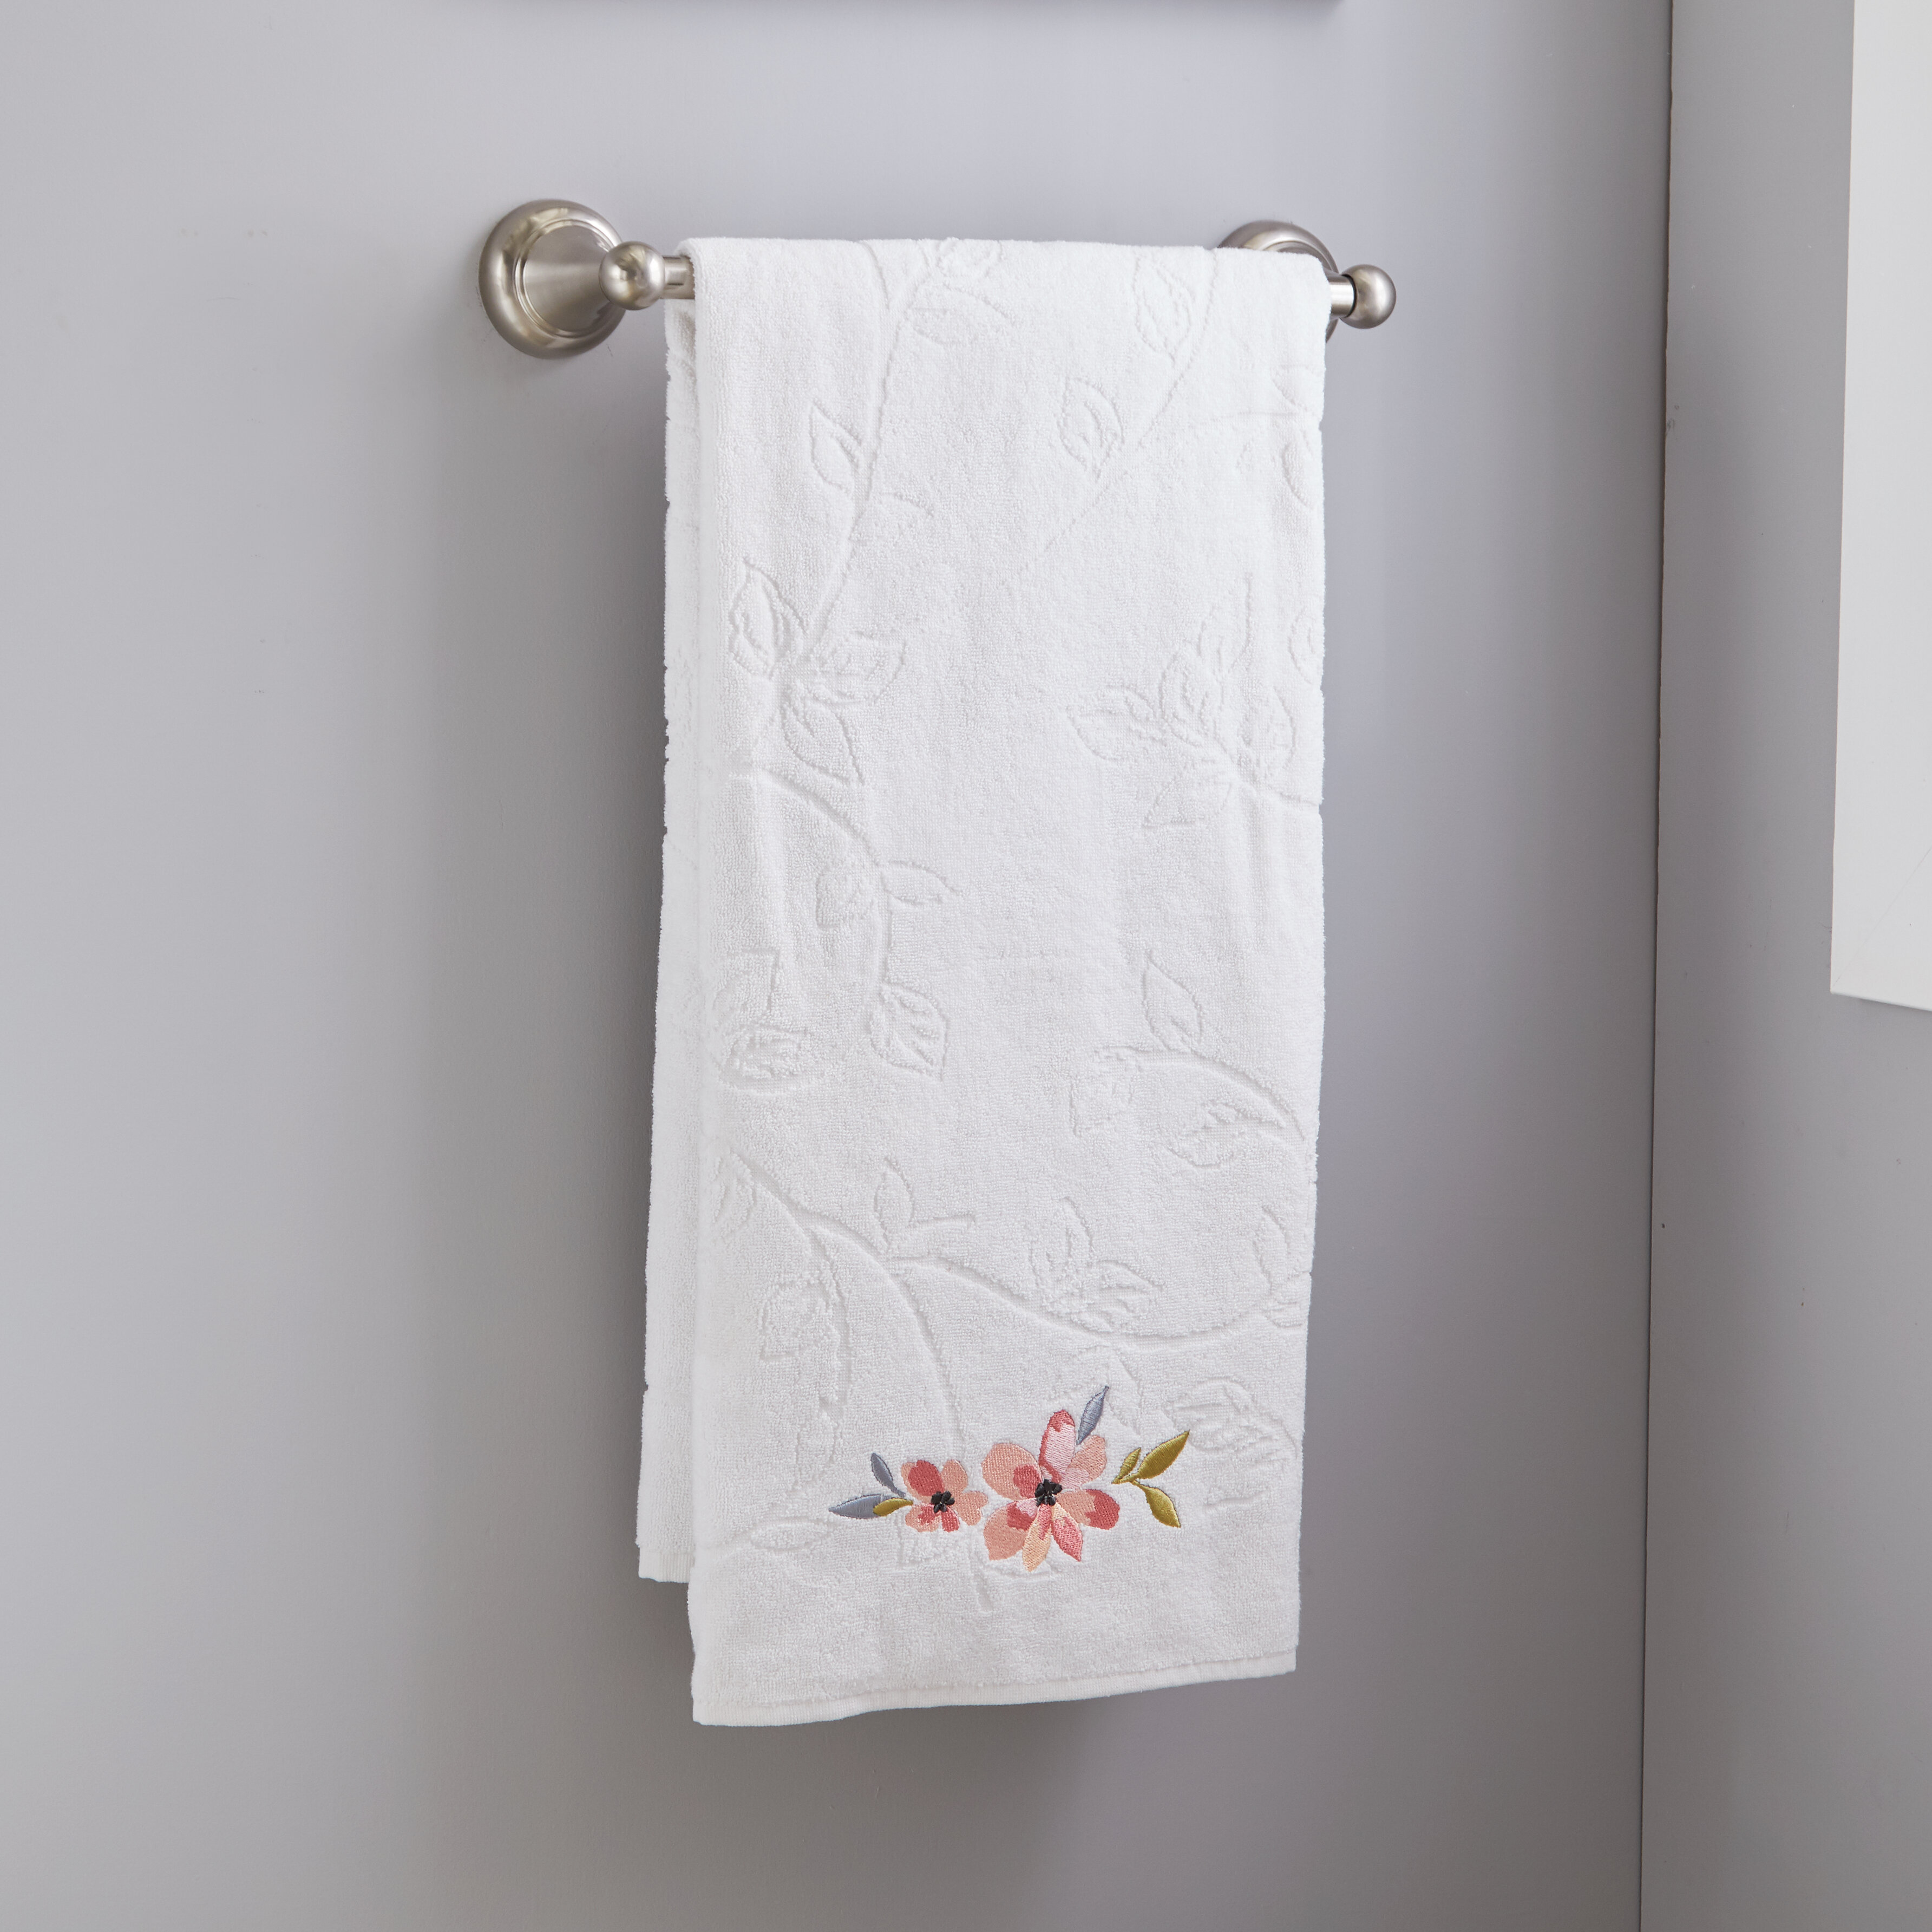 Luxurious Hampton Towels 100/% Pure Egyptian Cotton Top Quality Absorbent Towels